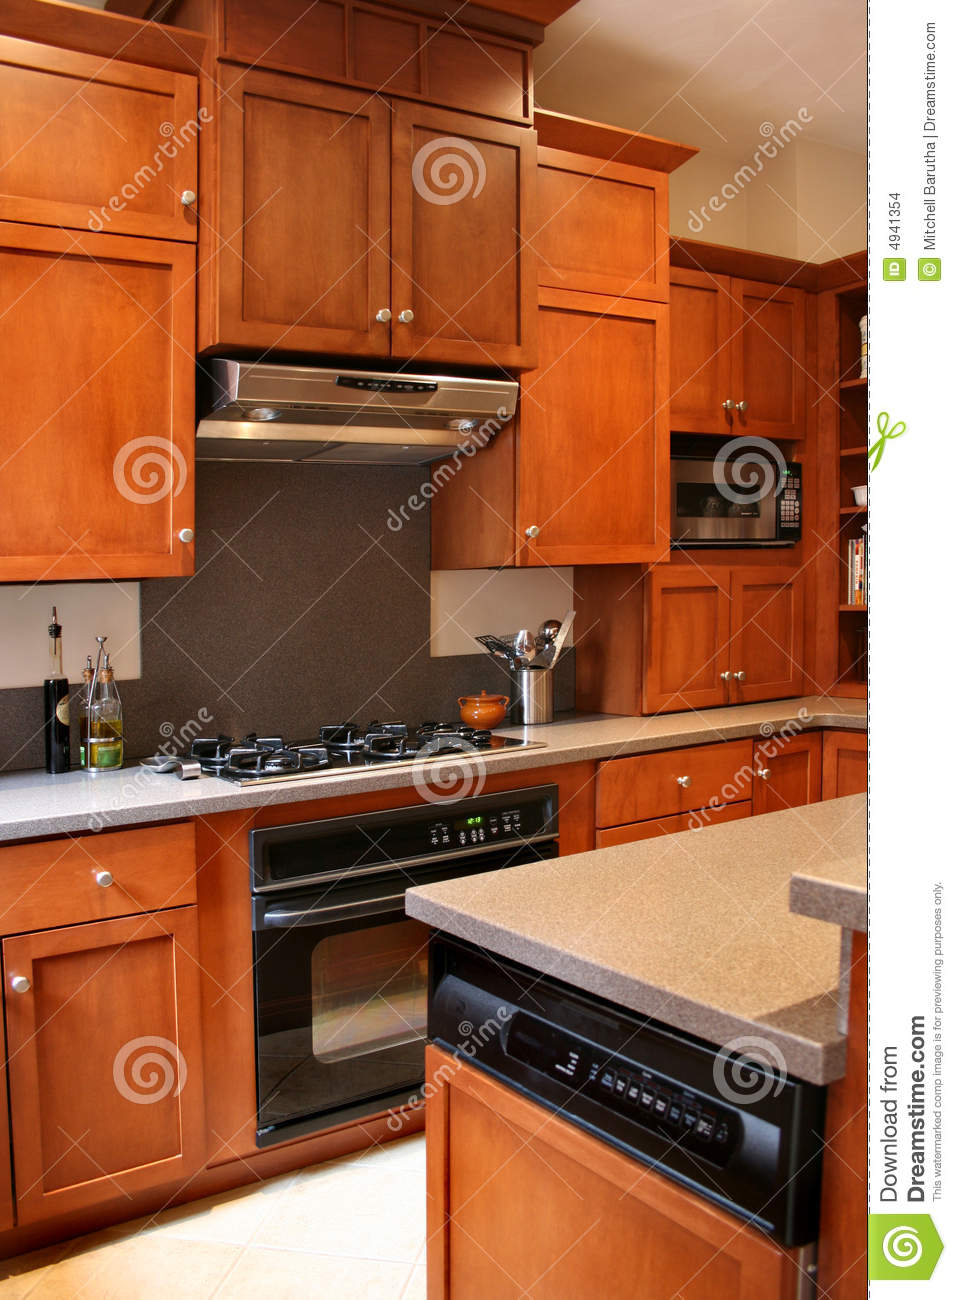 Kitchen Wood Cabinets Black And Stainless Stove Stock Images - Image: 4941354